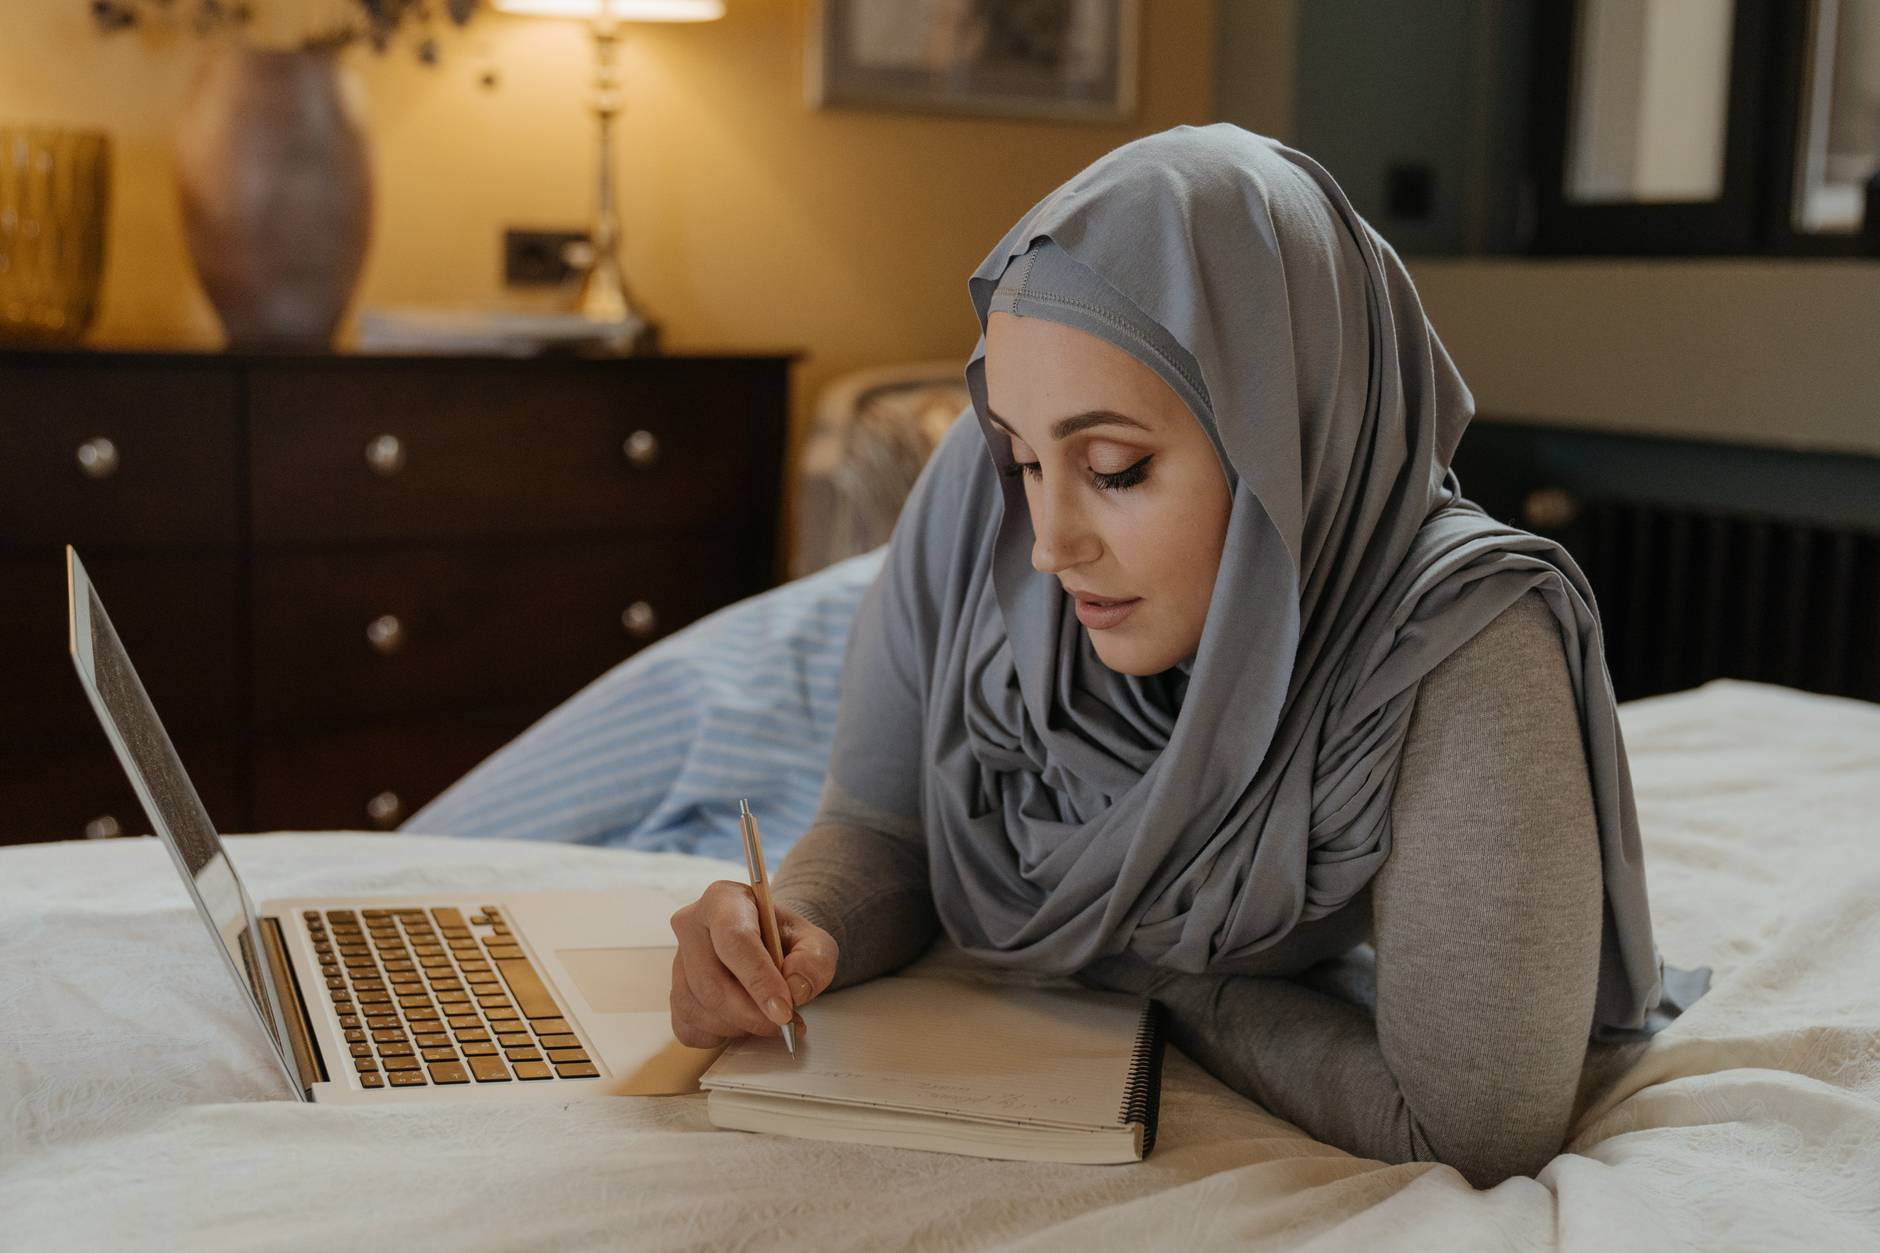 woman in gray hijab using macbook air